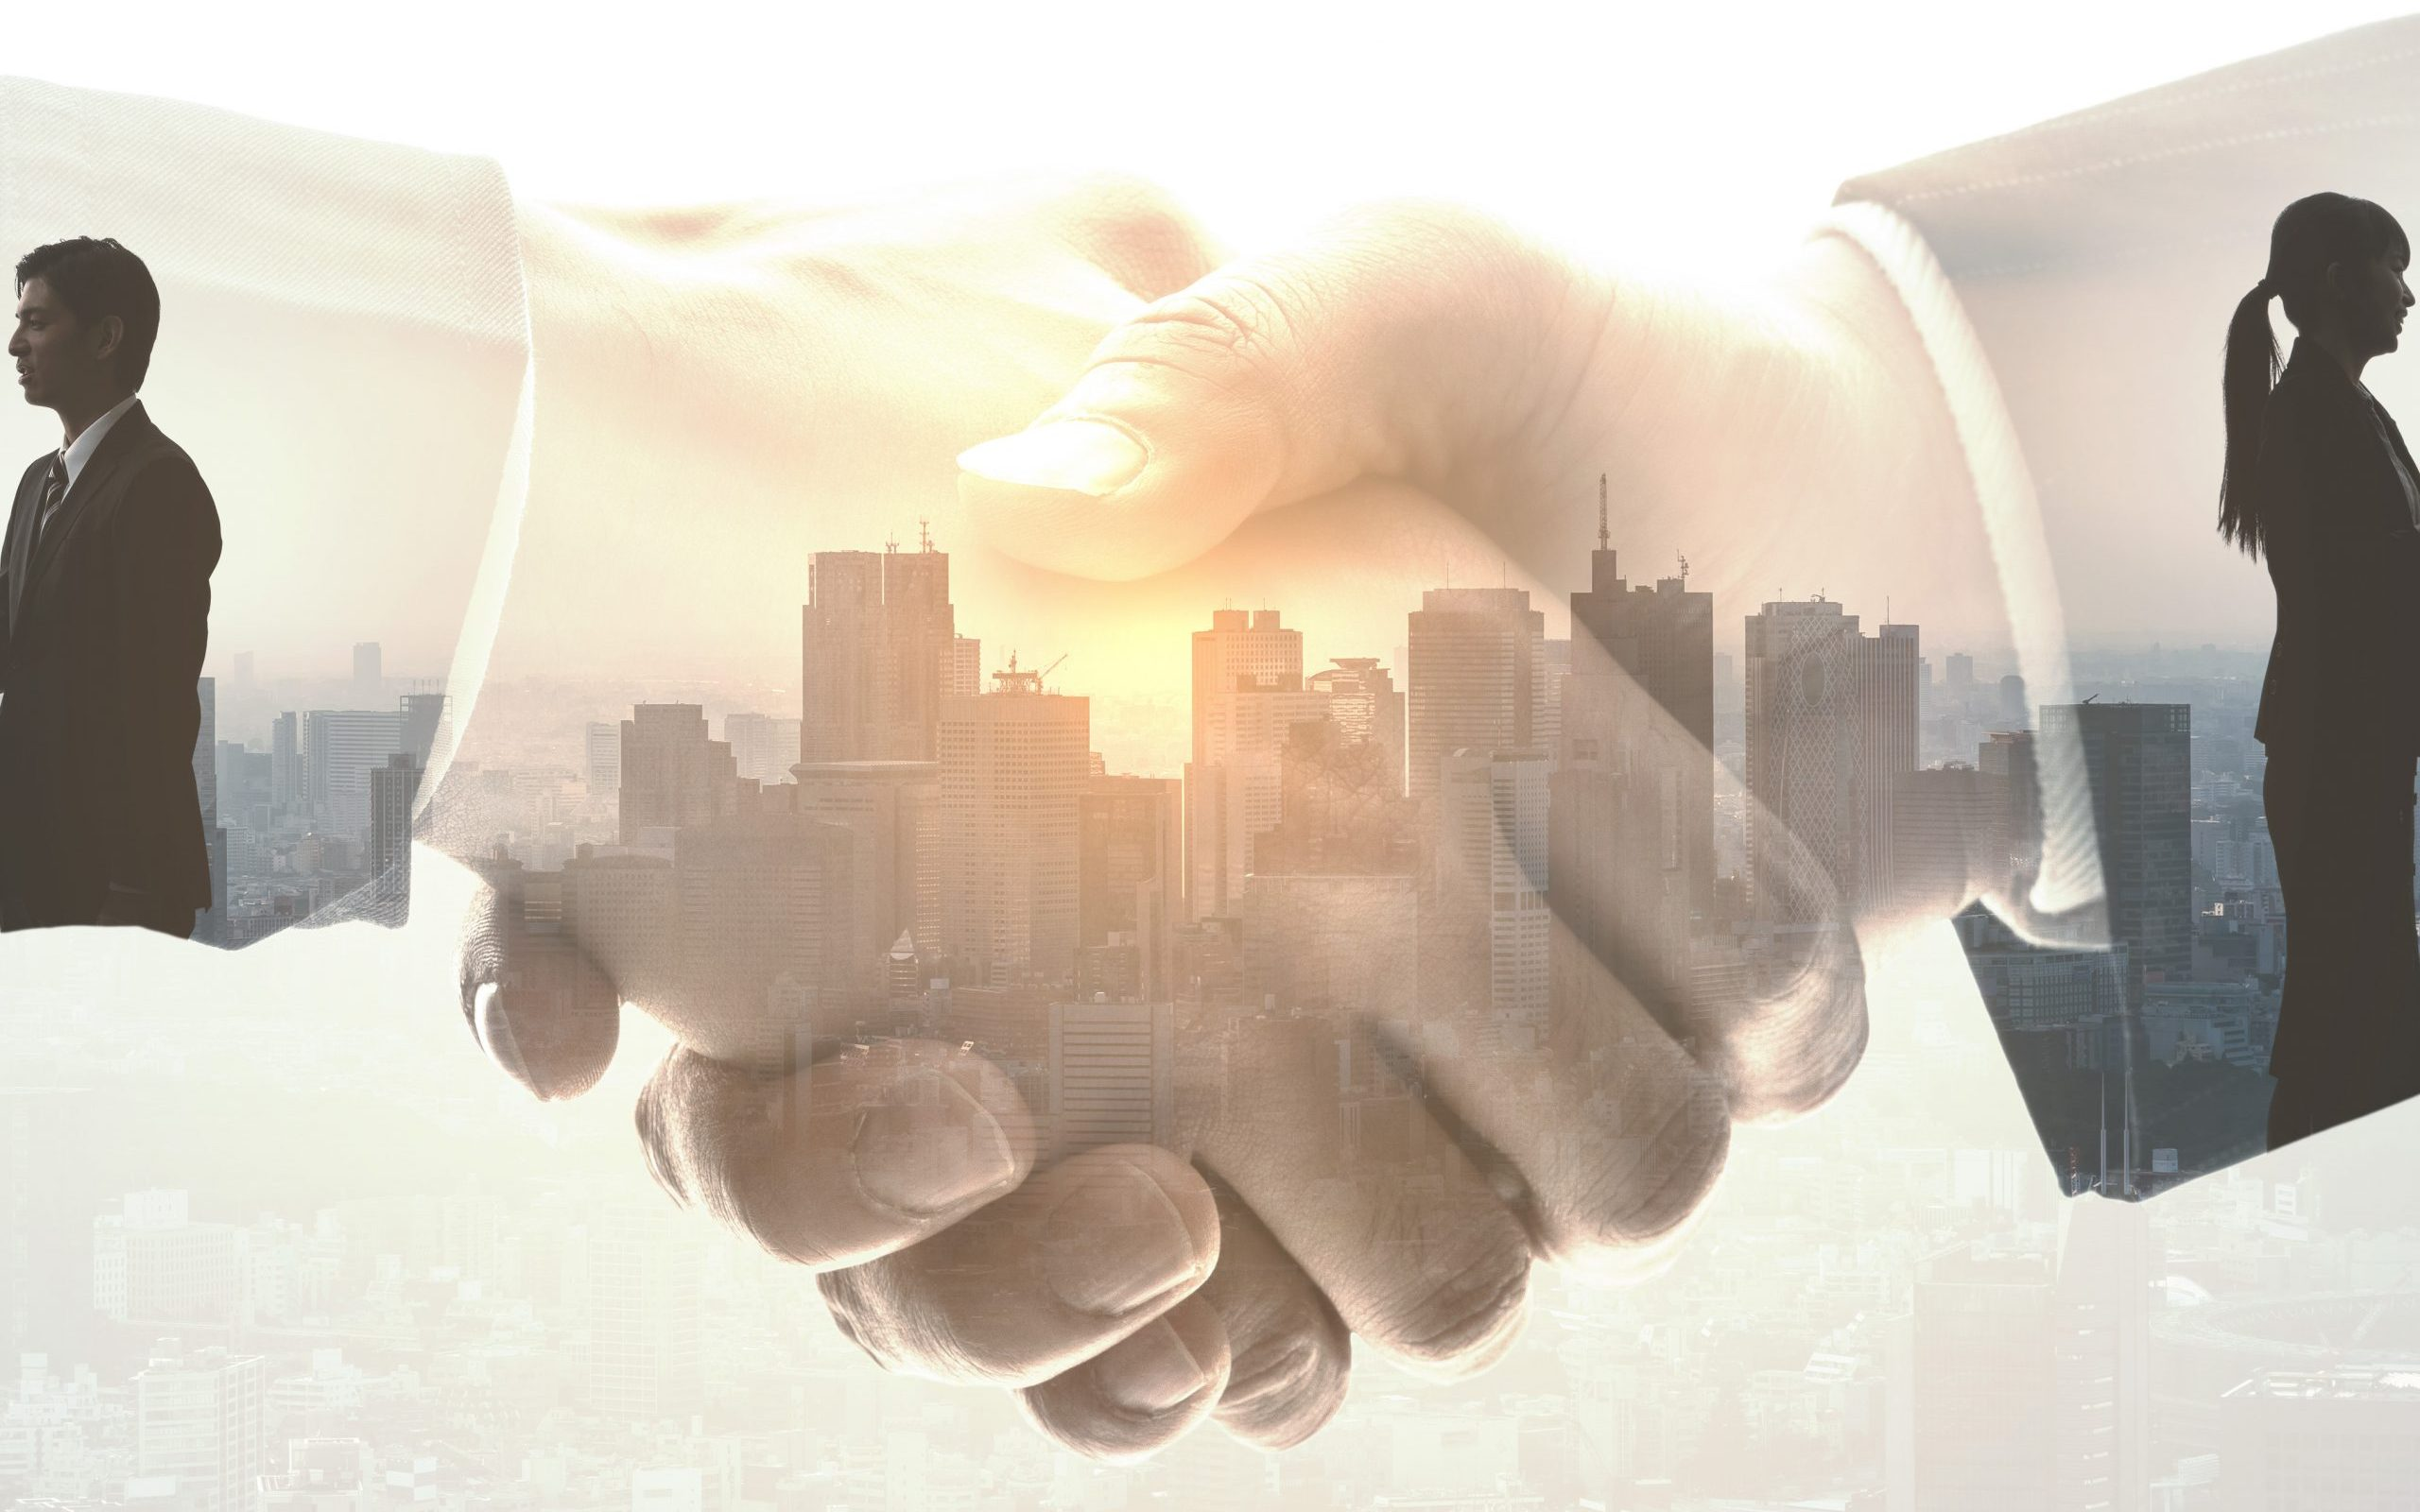 Partnership of business city skyline silhouette imposed within shaking hands